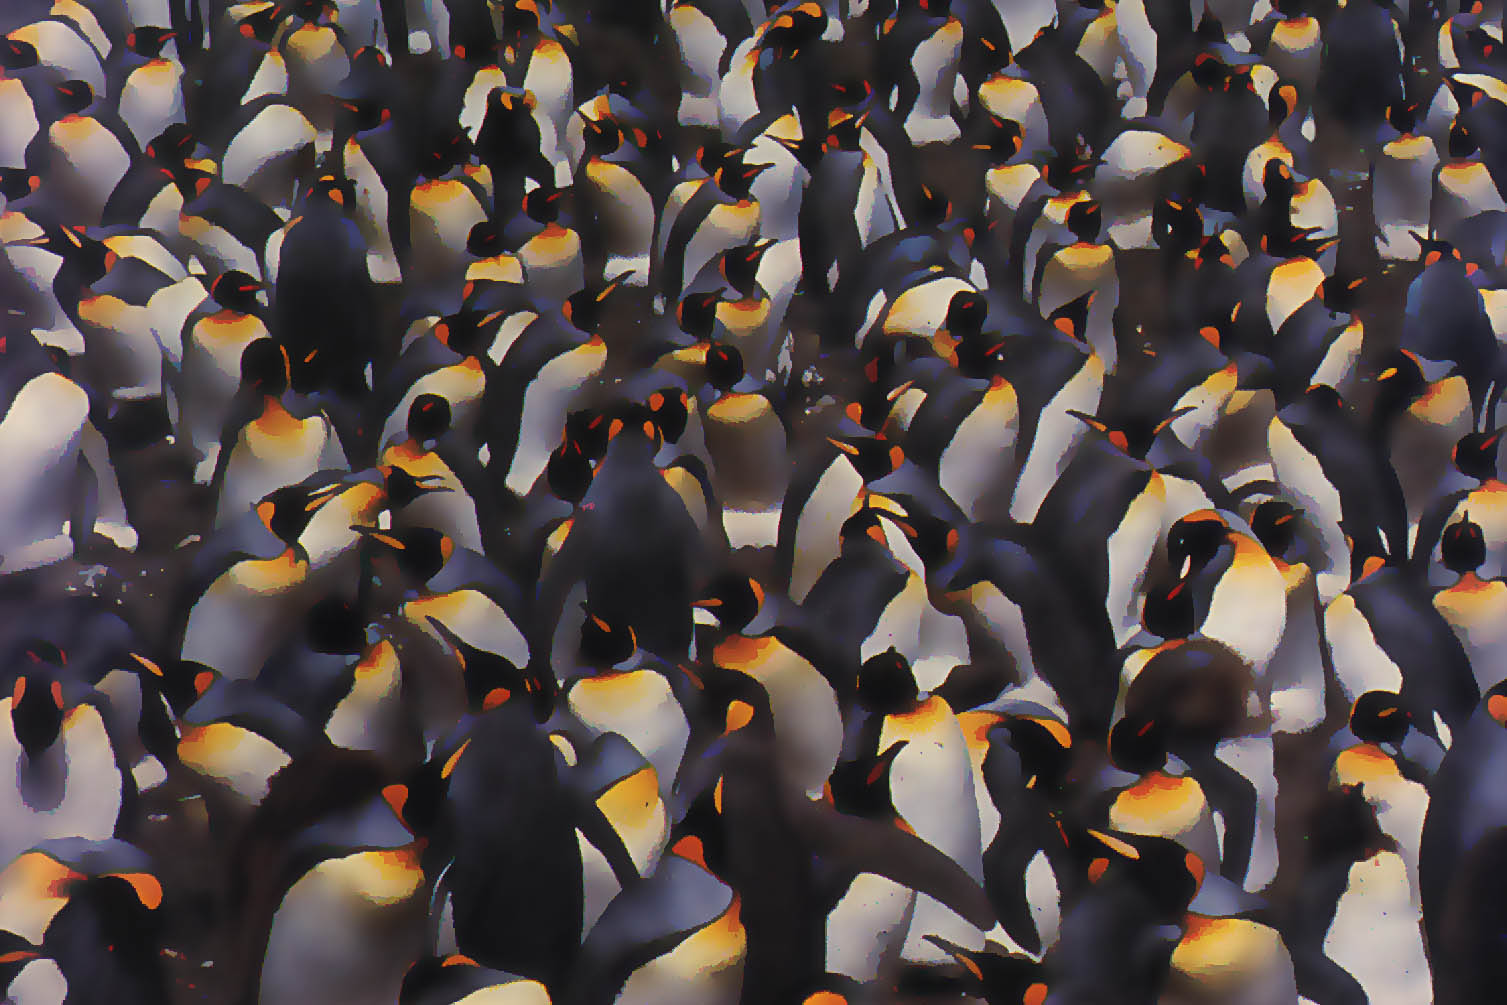 Pinguins-crowd